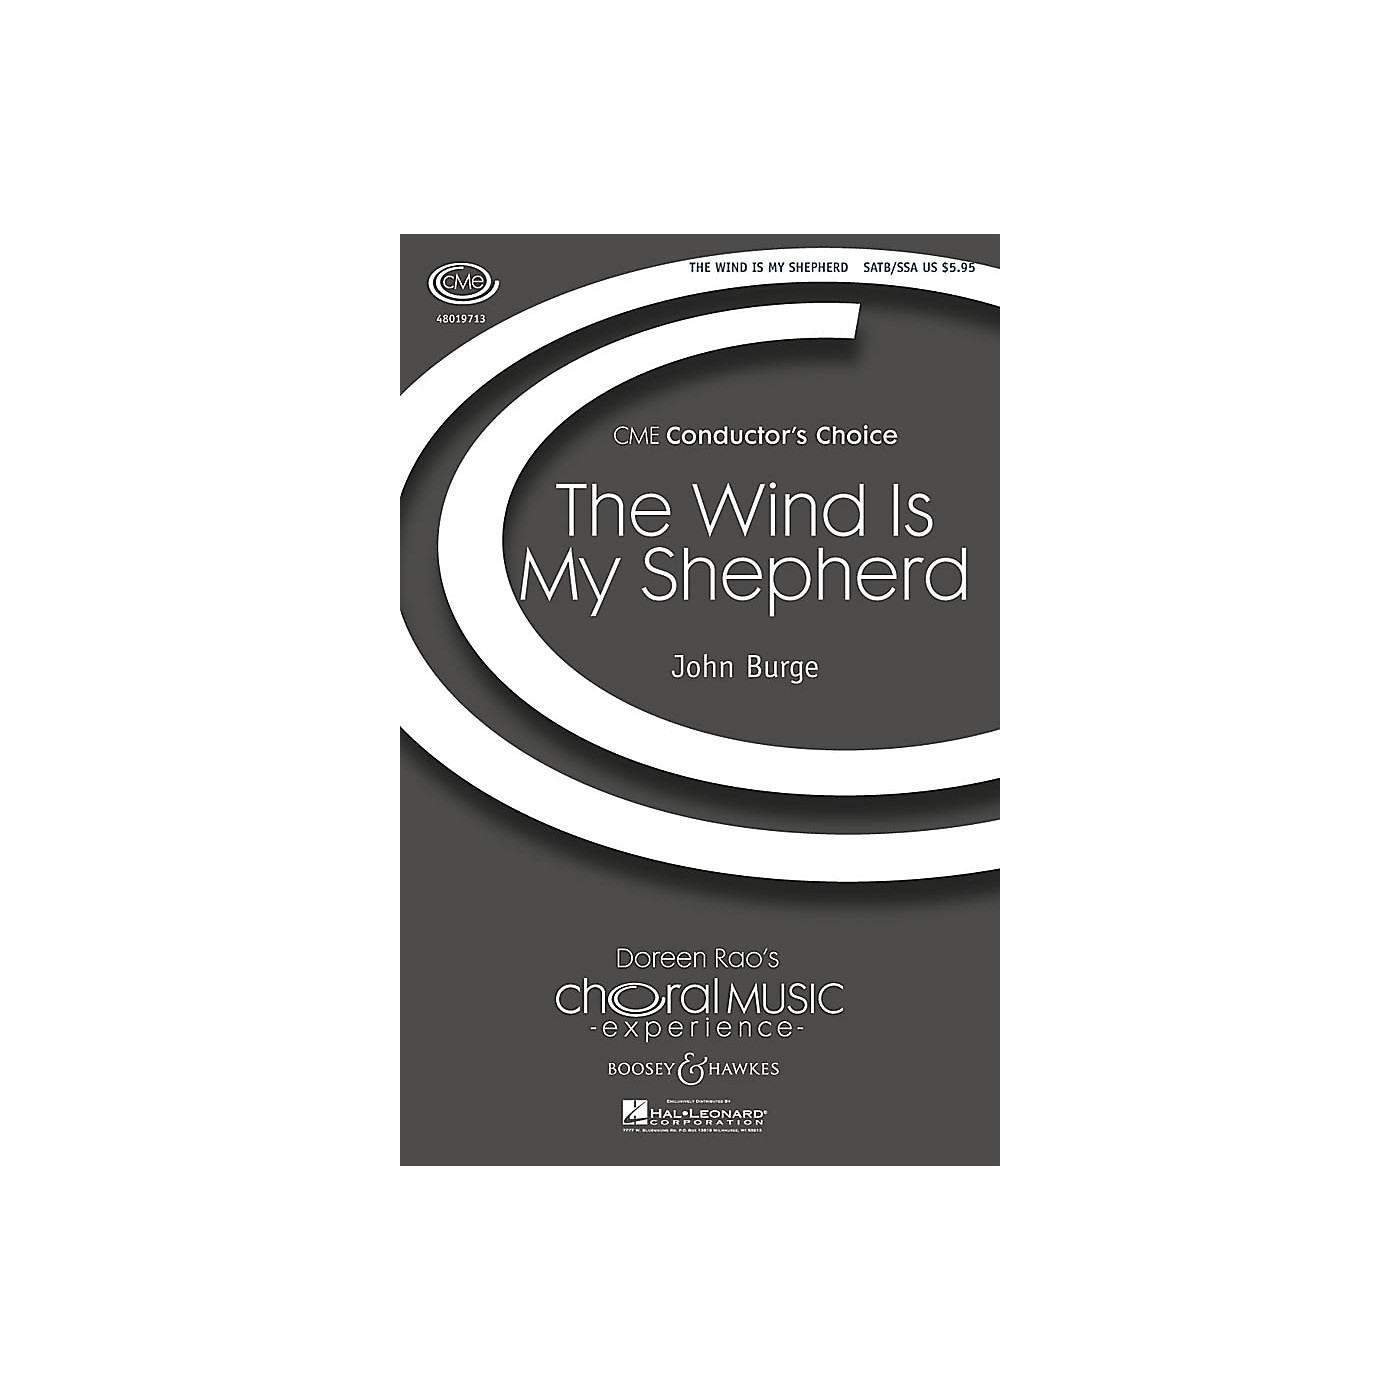 Boosey and Hawkes The Wind Is My Shepherd (CME Conductor's Choice) SATB Choir/Treble Choir composed by John Burge thumbnail